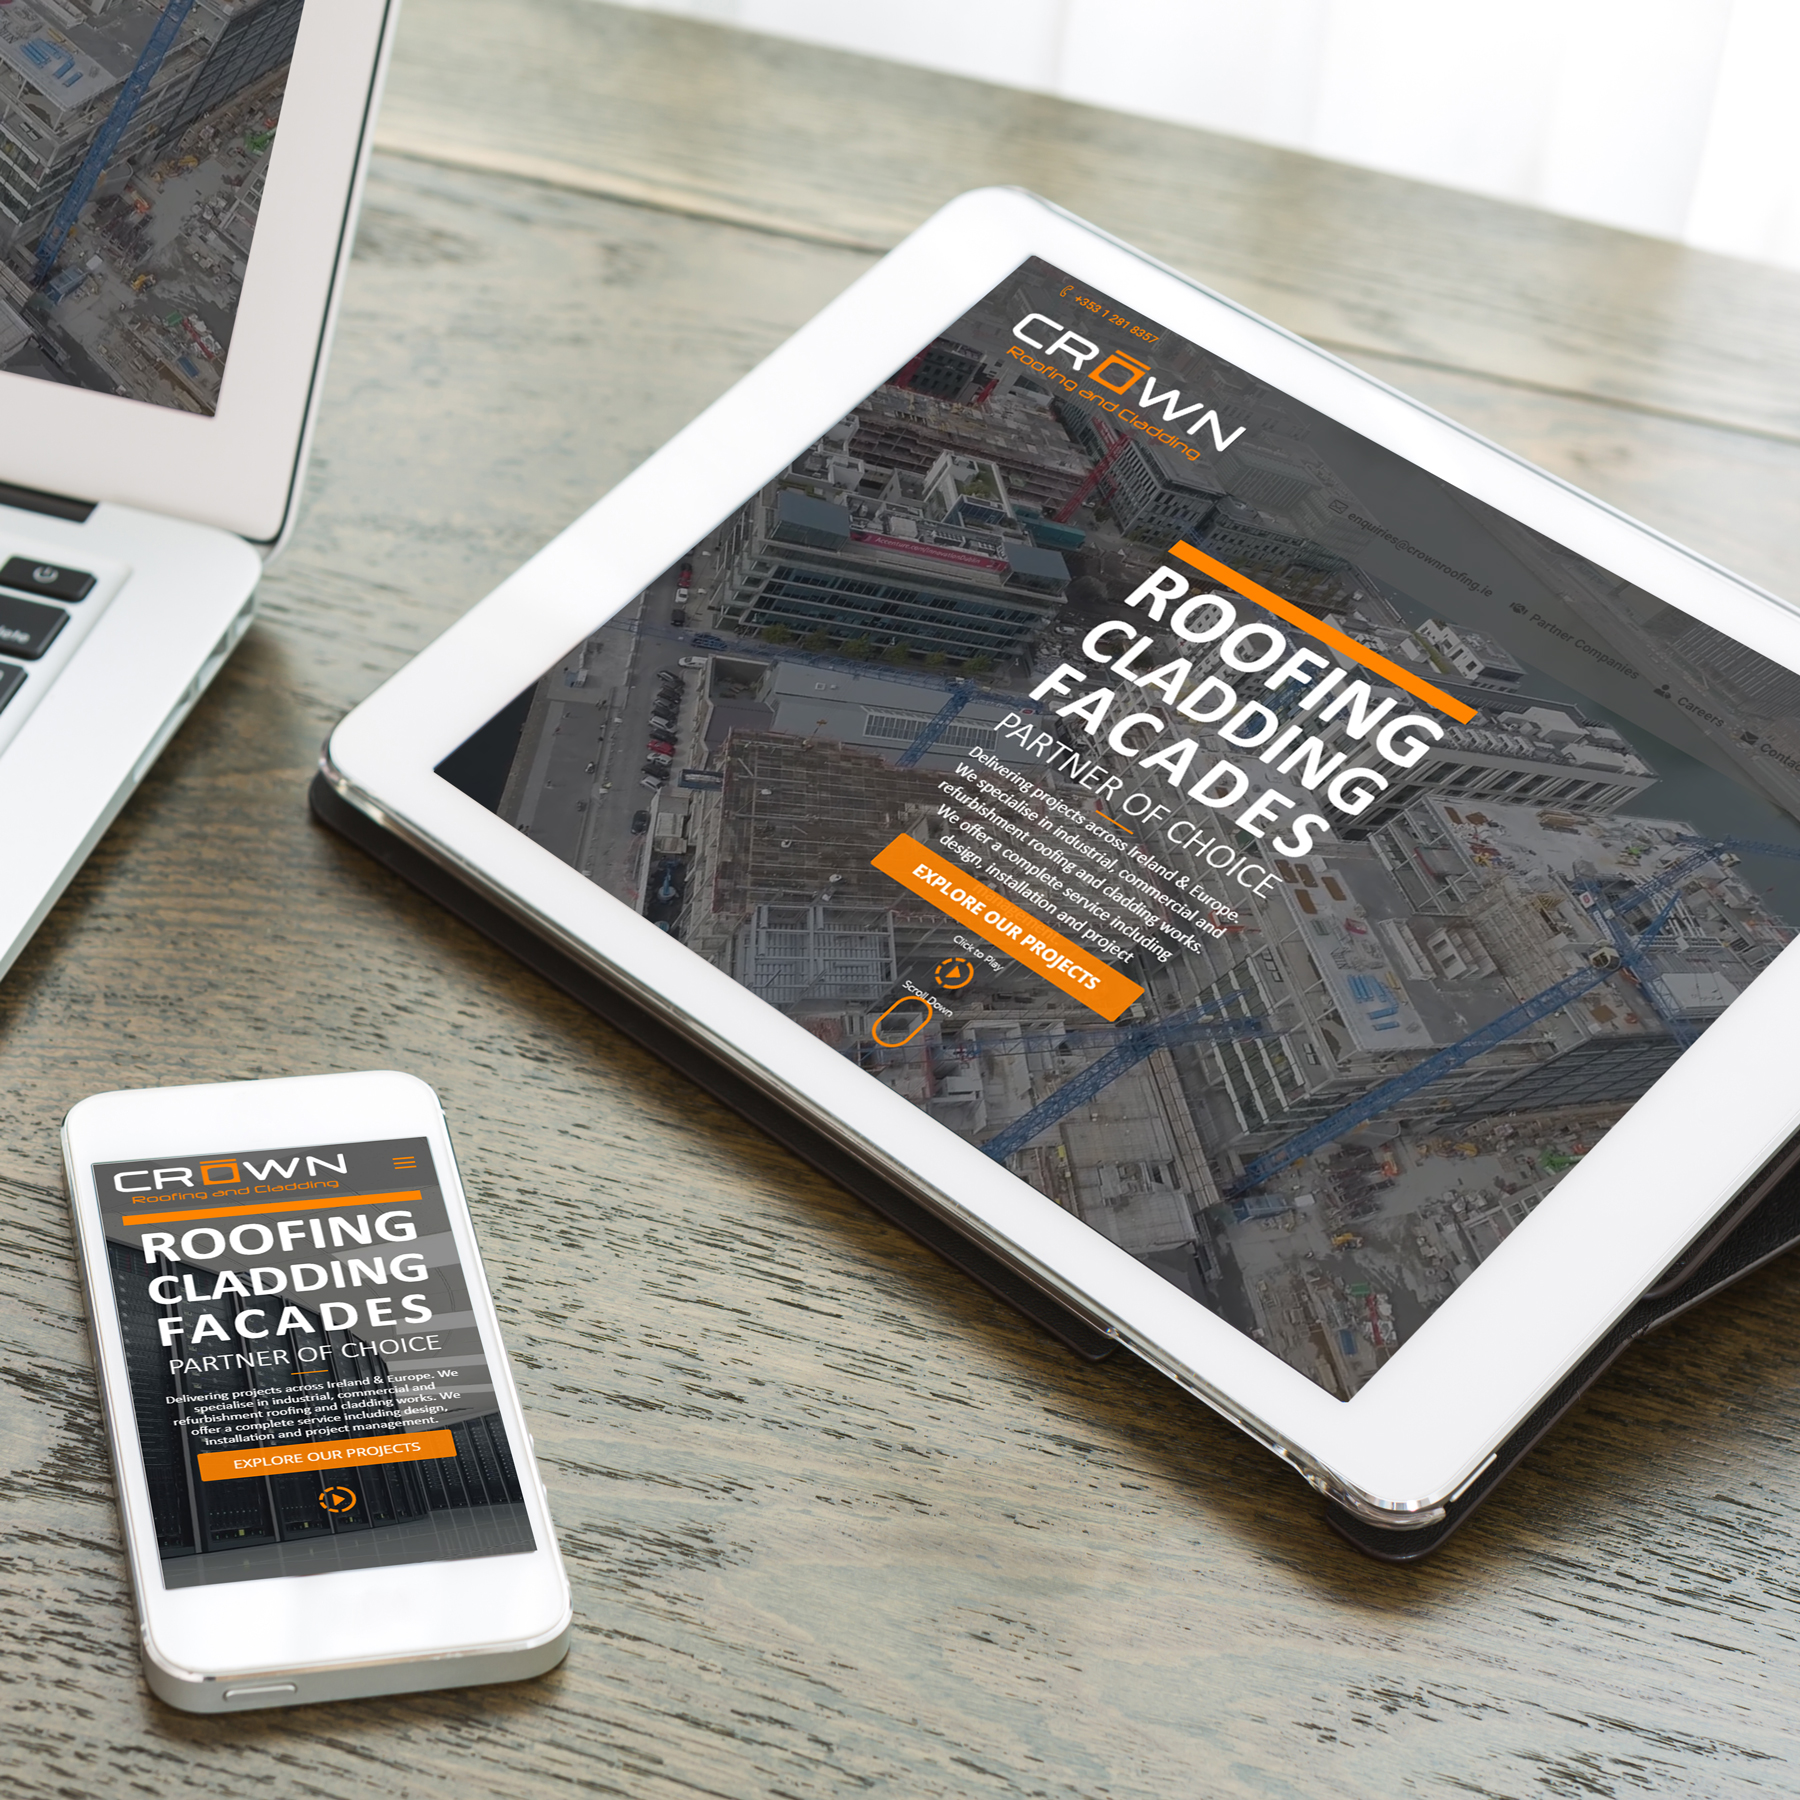 Crown Roofing Website Design & Development by Kobba - The Creative Agency